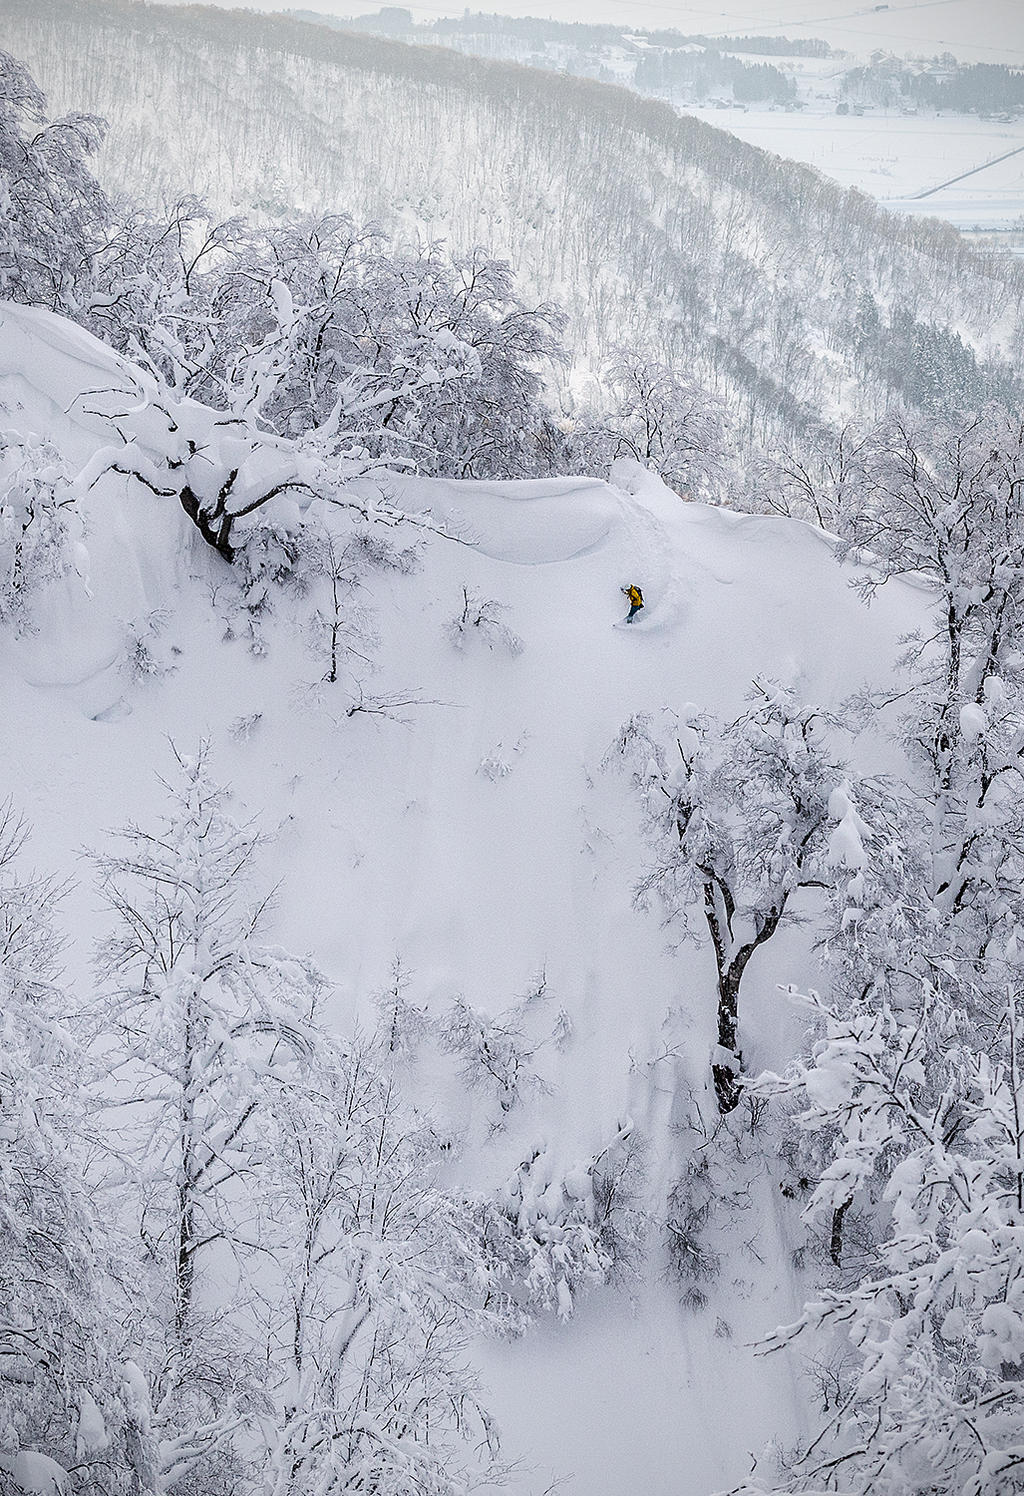 Lucas descends one of the steepest lines in Nozawa Onsen.